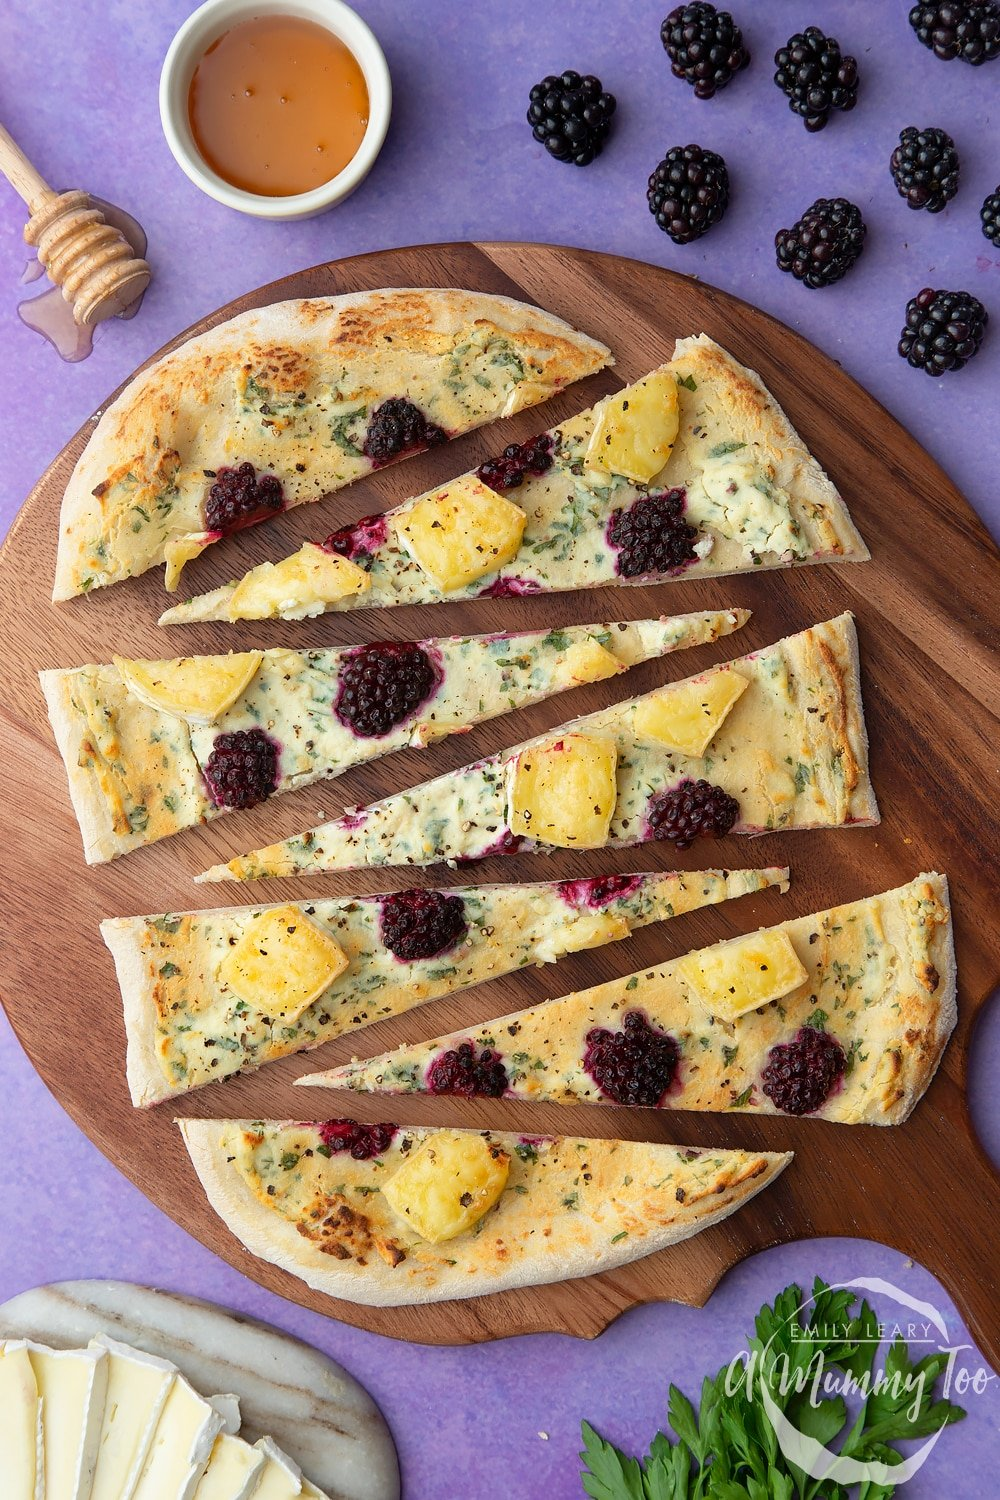 Brie and blackberry pizza sliced on a wooden board. Ingredients surround the board.